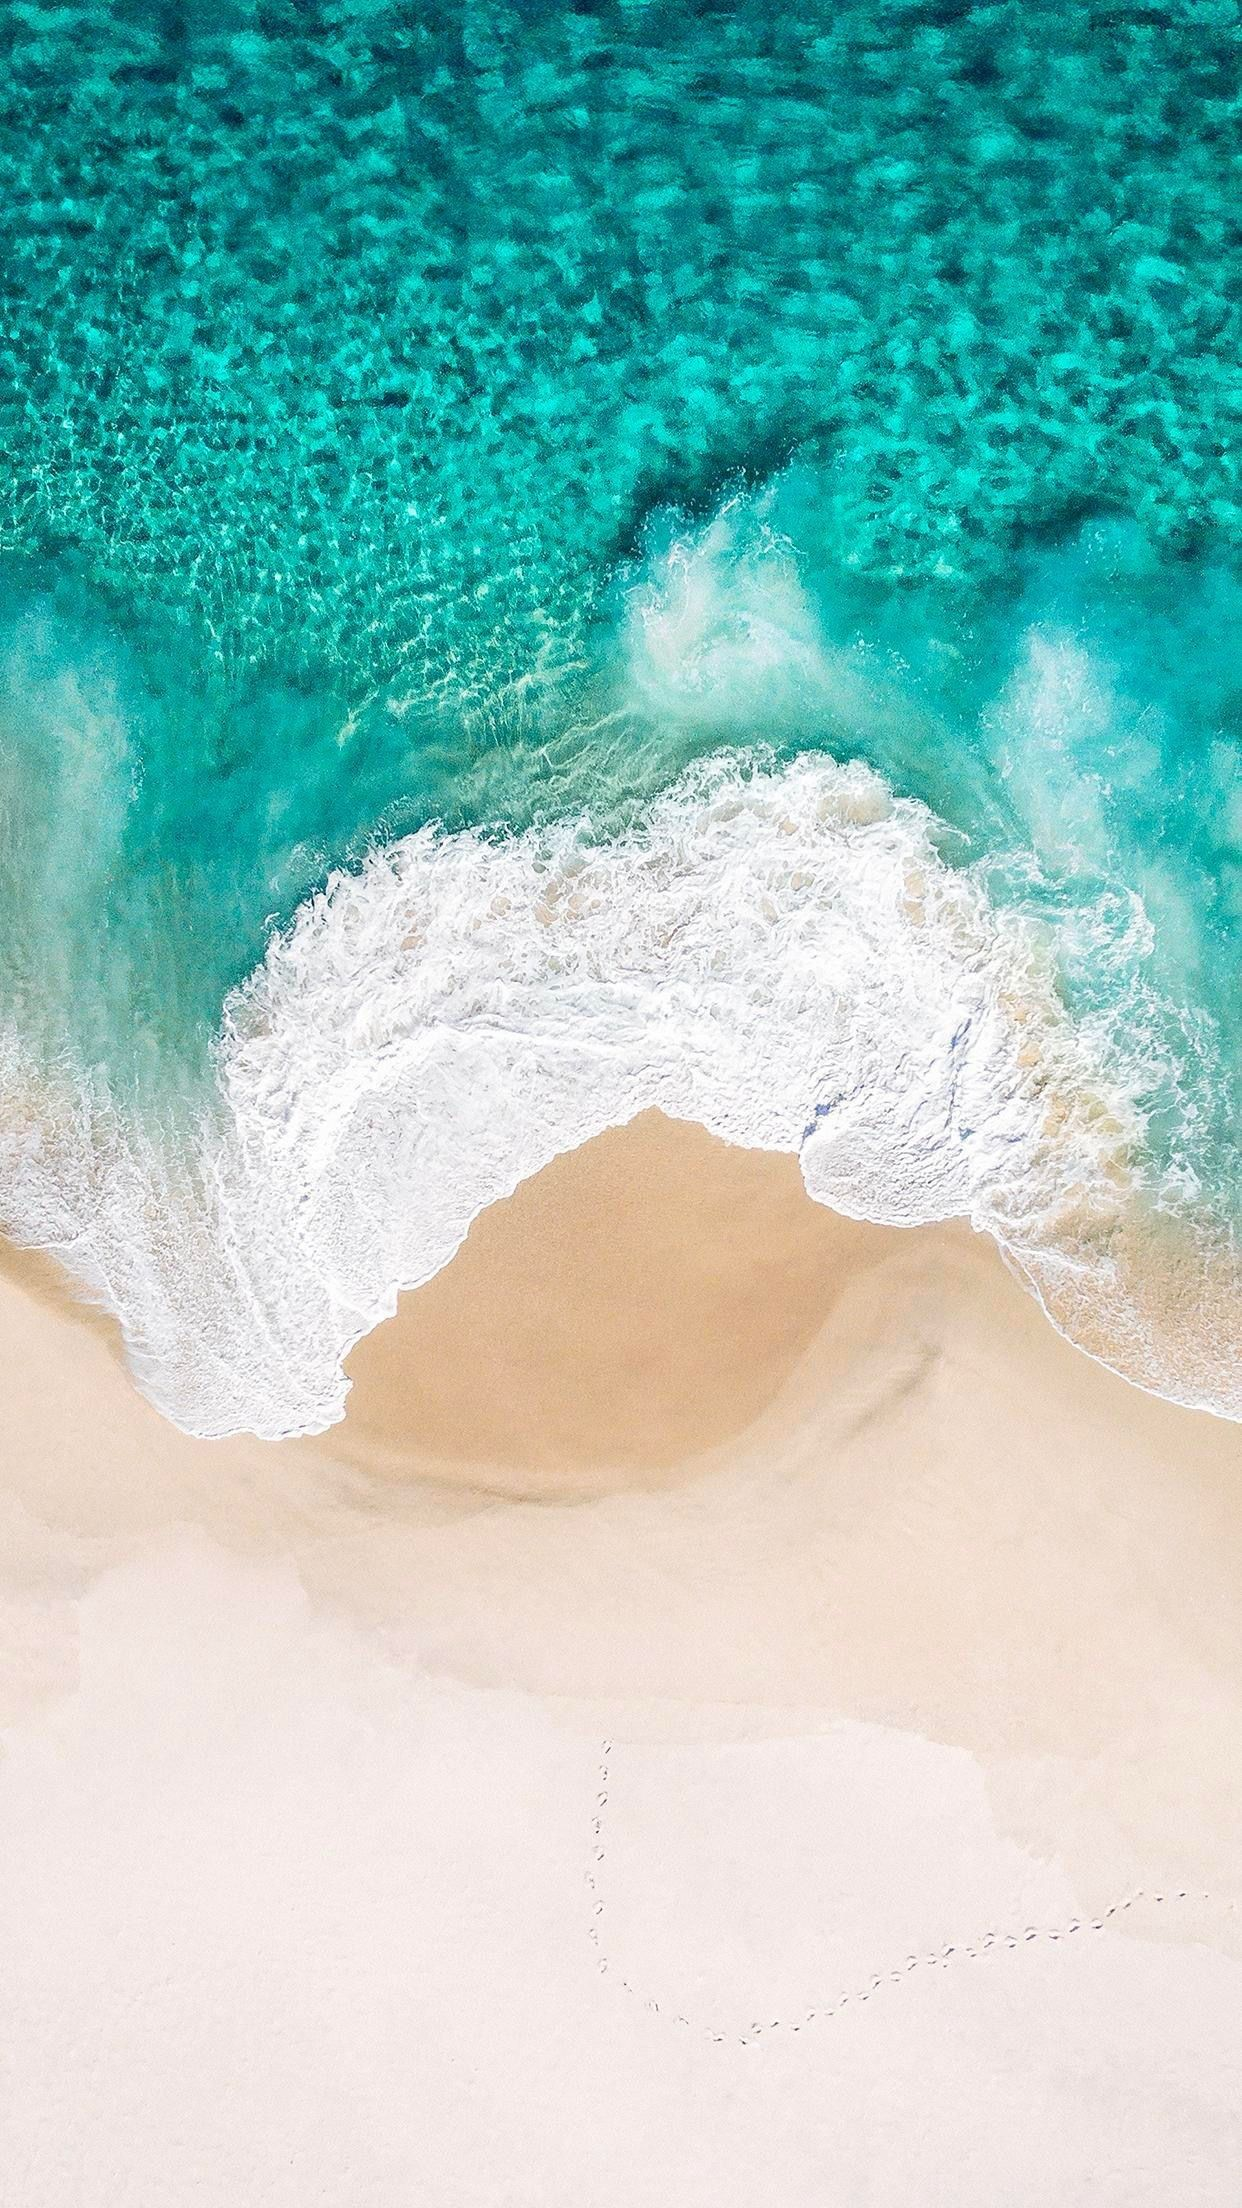 Https All Images Net Sand Beach Glasses Starfish Coconut Hd Wallpaper Iphone 6 New Iphone 8 Iphone Pinterest Ios 11 Wallpaper Waves Wallpaper Ipad Wallpaper